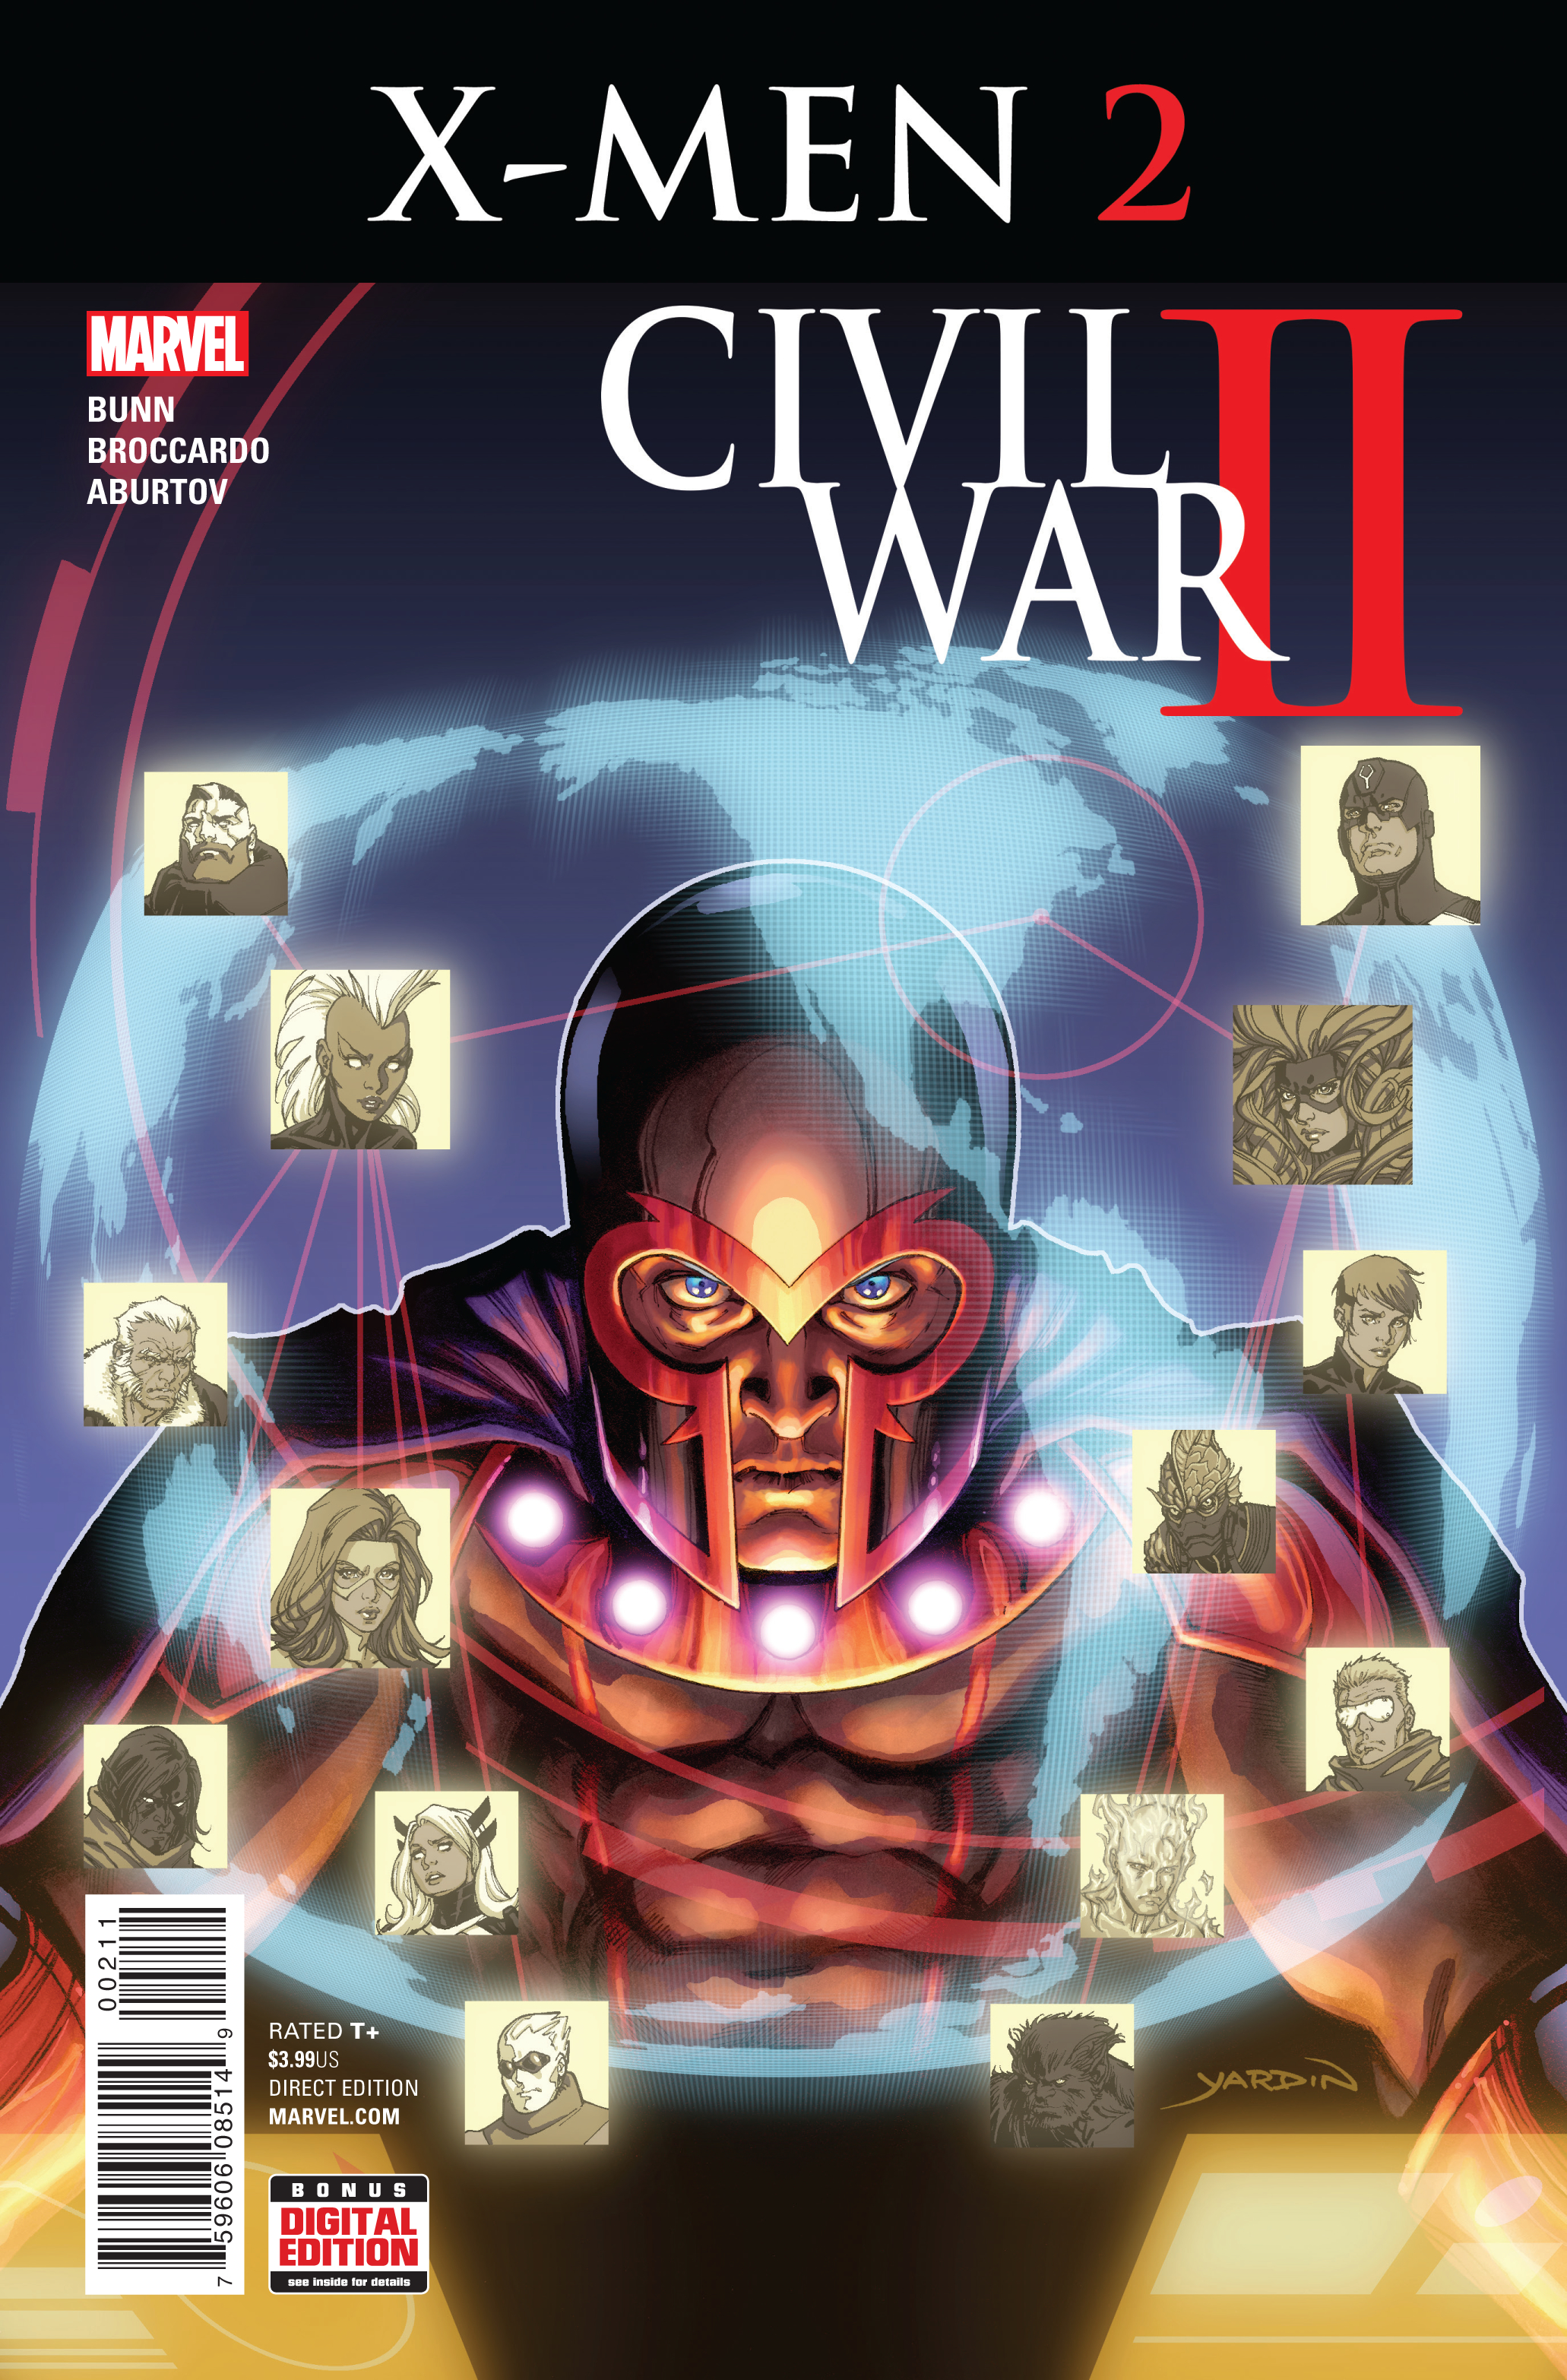 CIVIL WAR II X-MEN #2